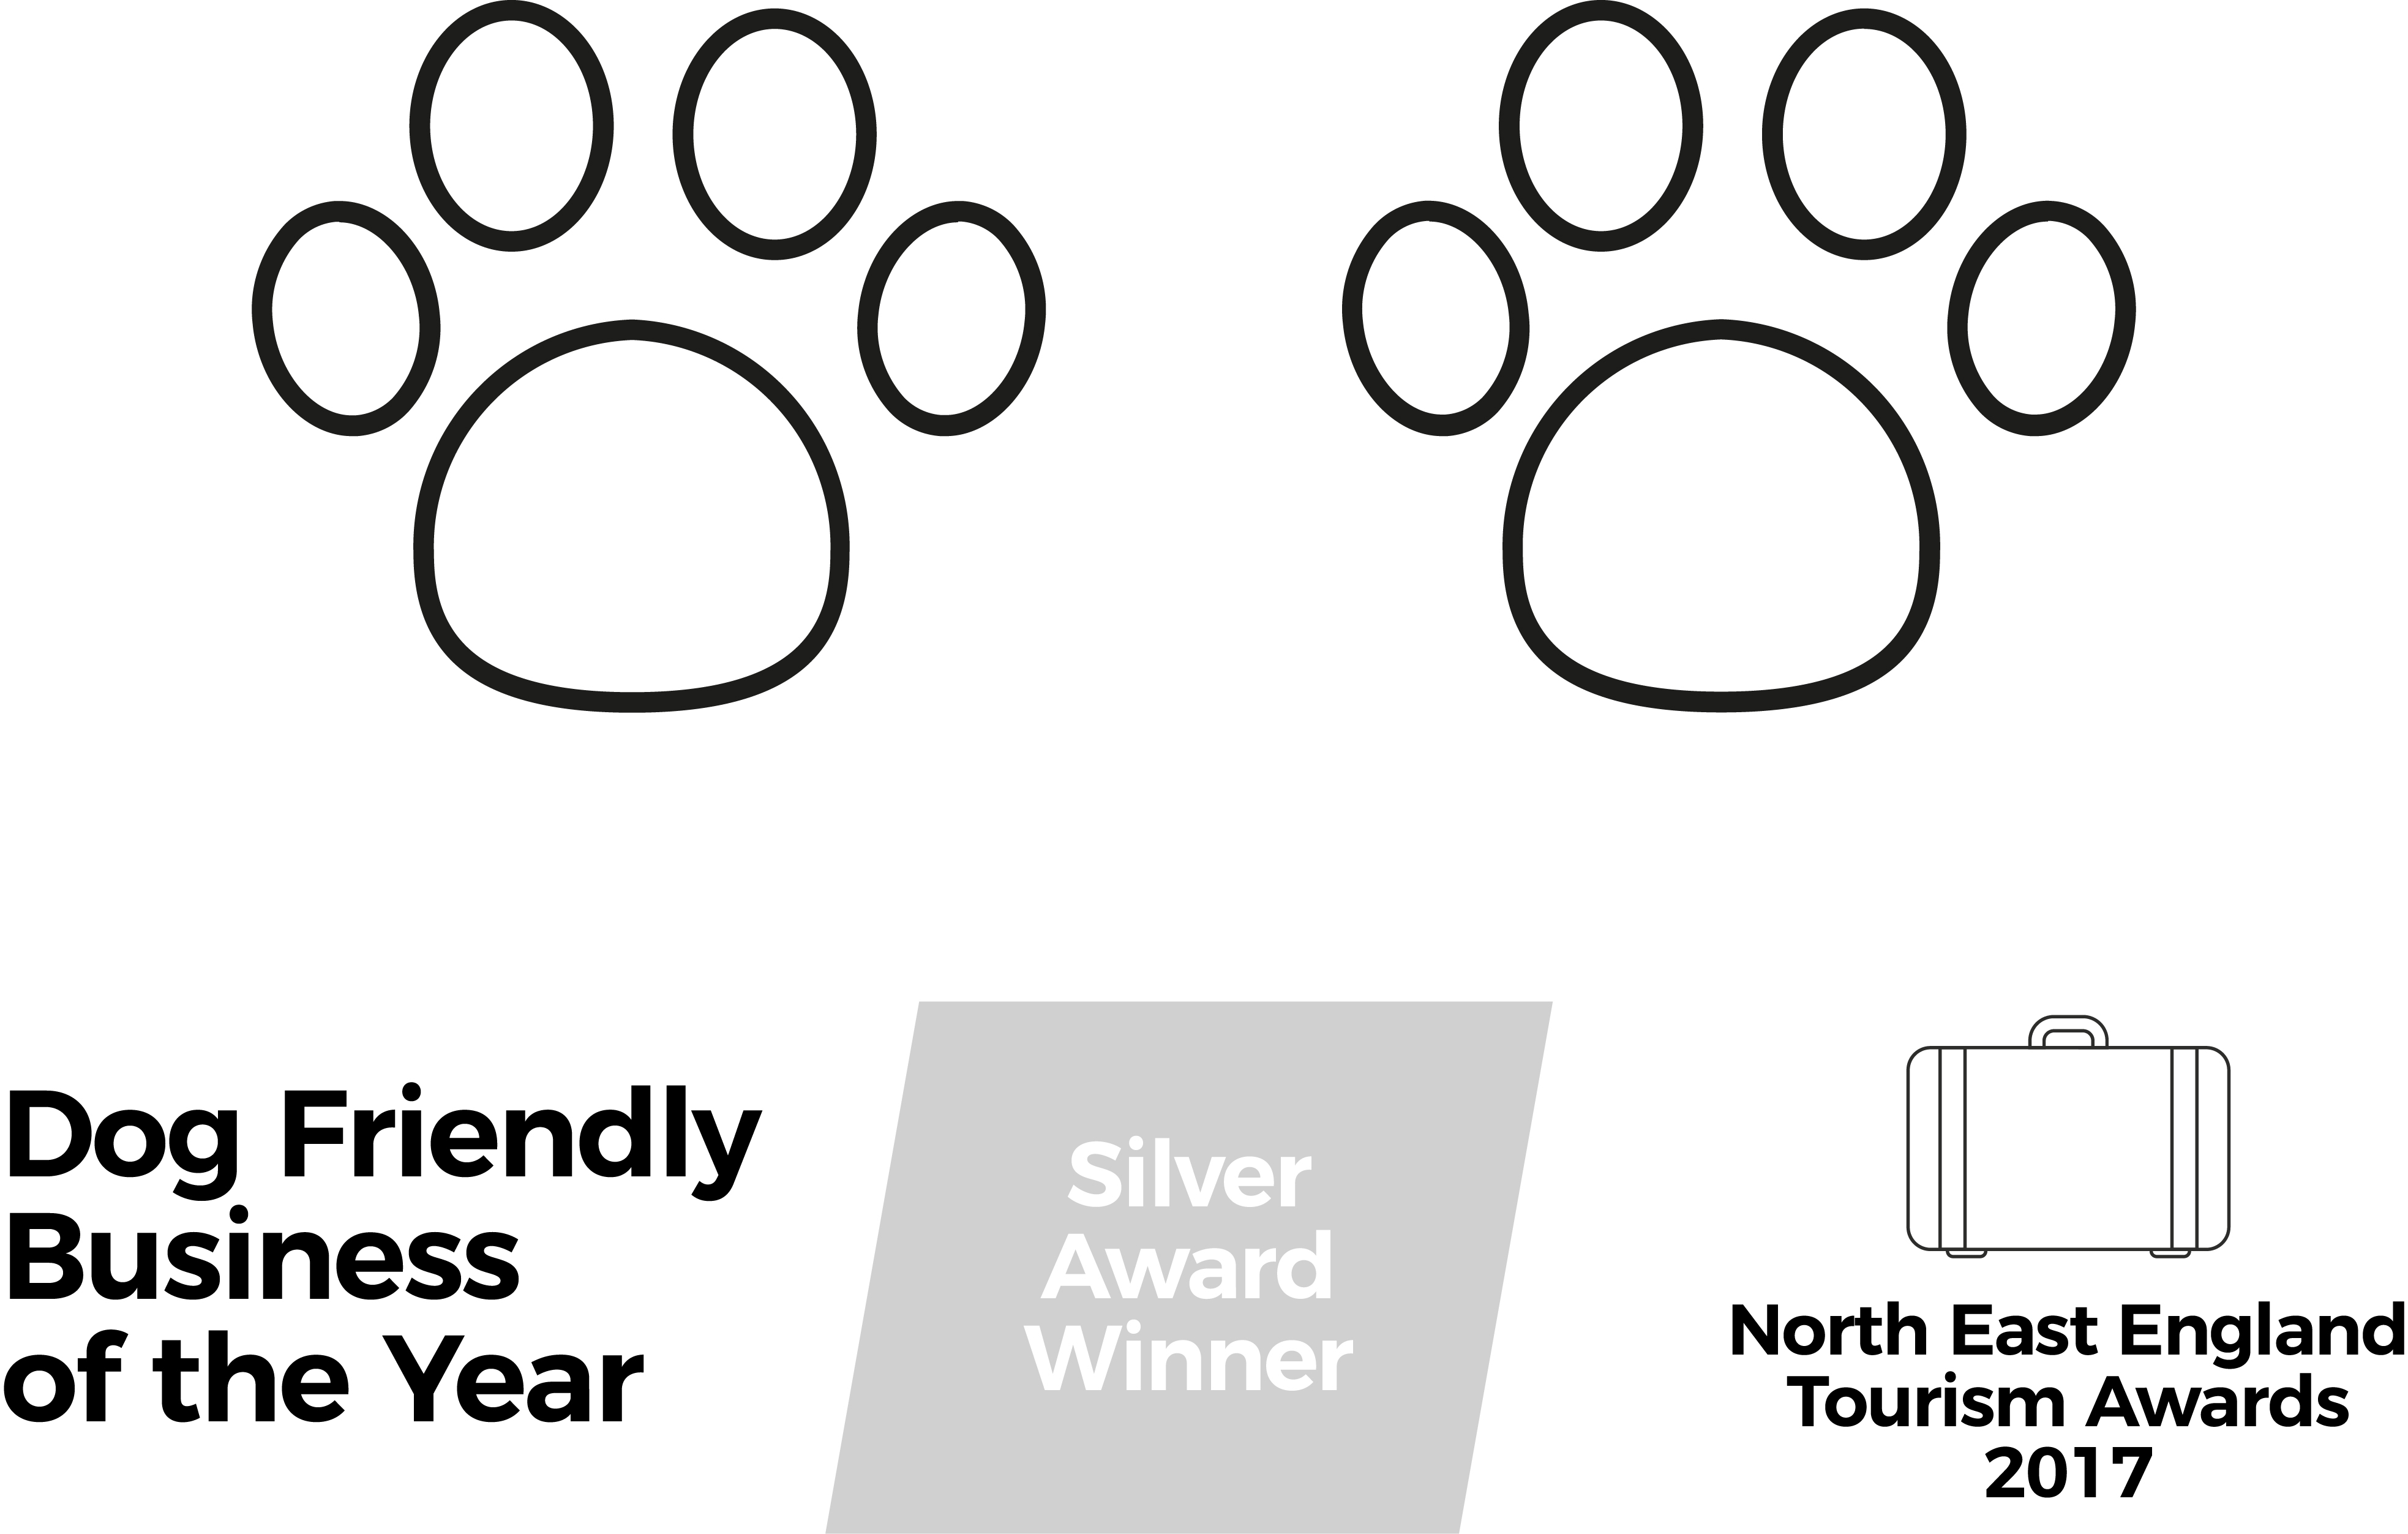 Silver Awards for Dog Friendly Business 2016 North East Tourism